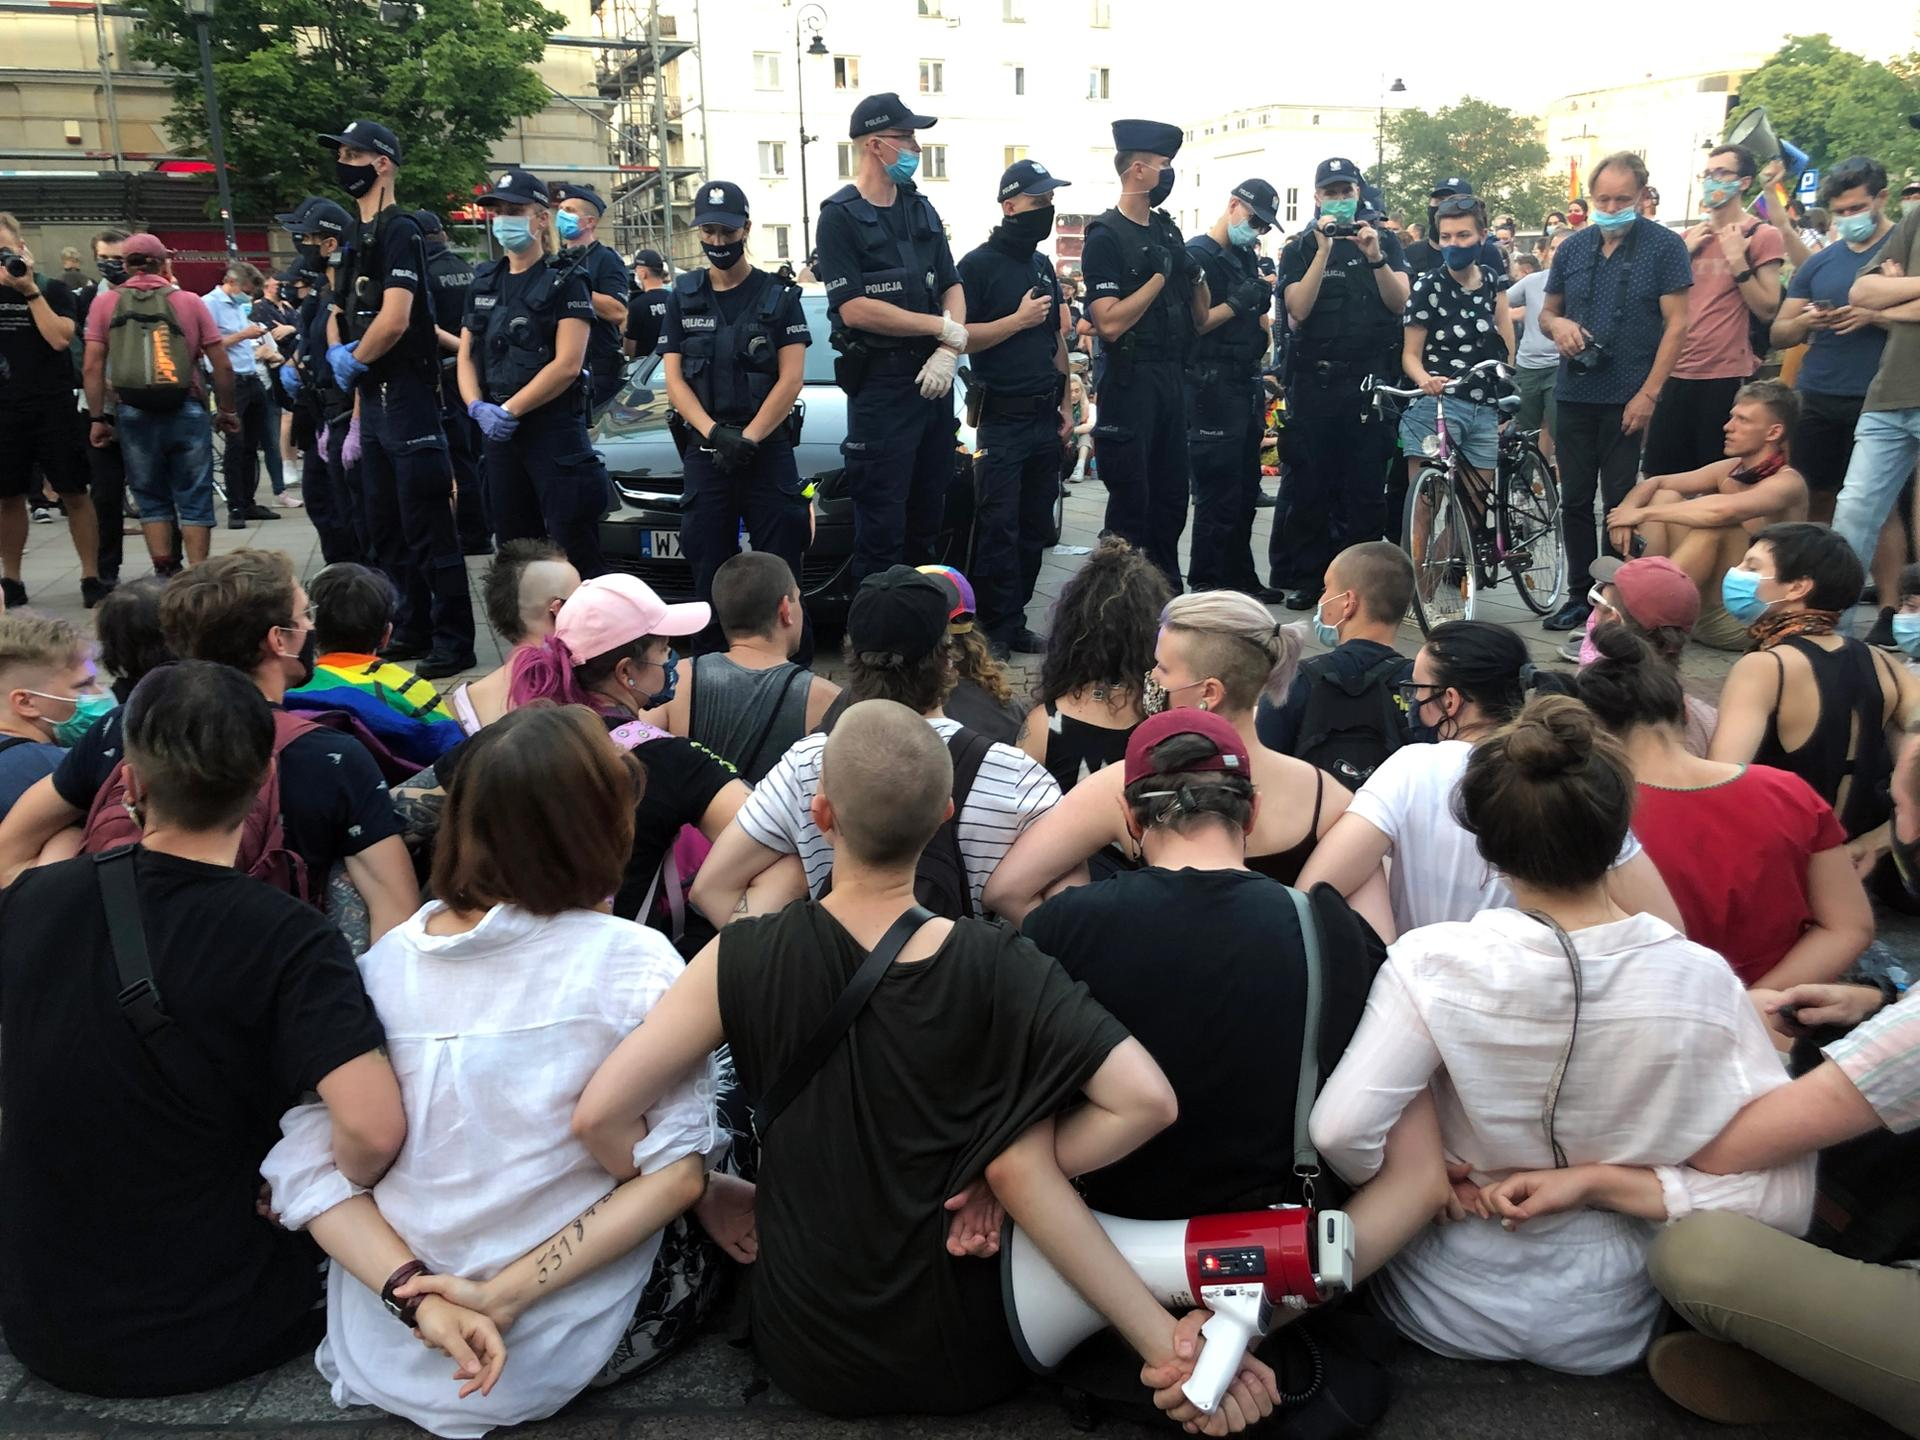 Protestors at a pro-LGBTQ rally on 7 August in Warsaw Photo: Jerzy Tabor